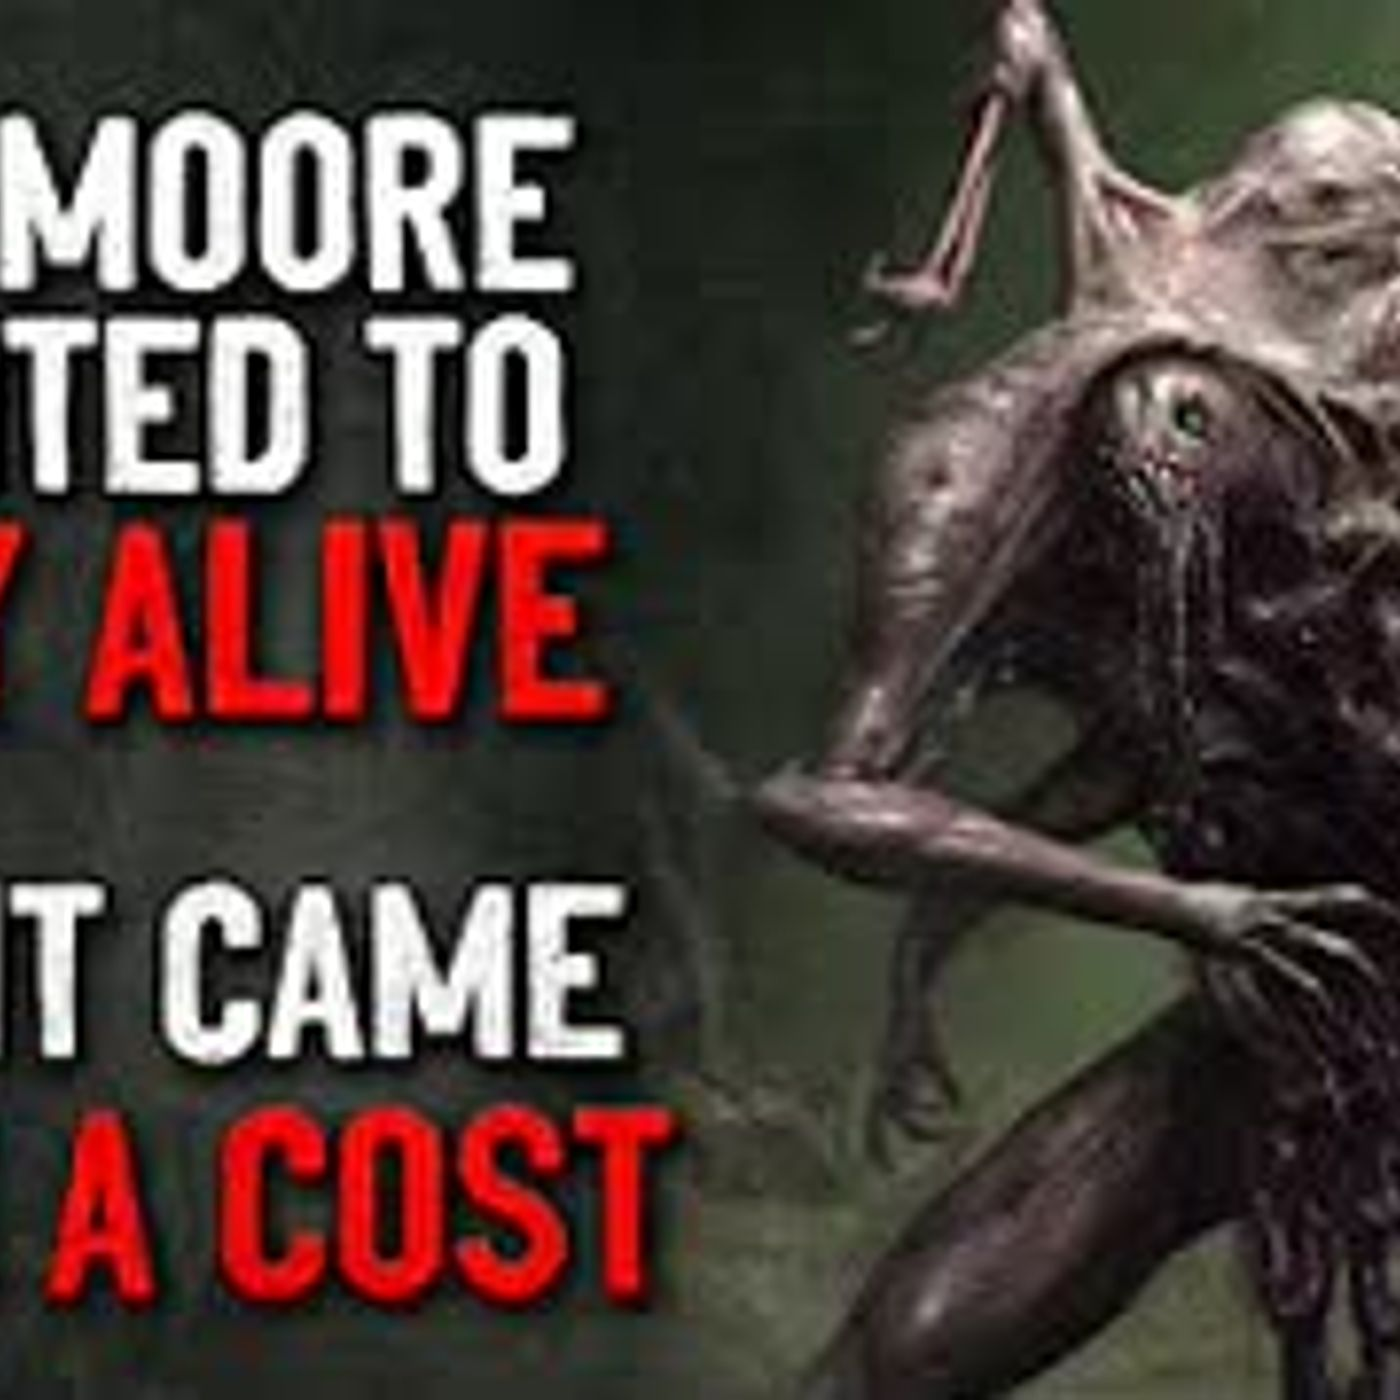 """Mr. Moore wanted to stay alive, and it came with a cost"" Creepypasta"